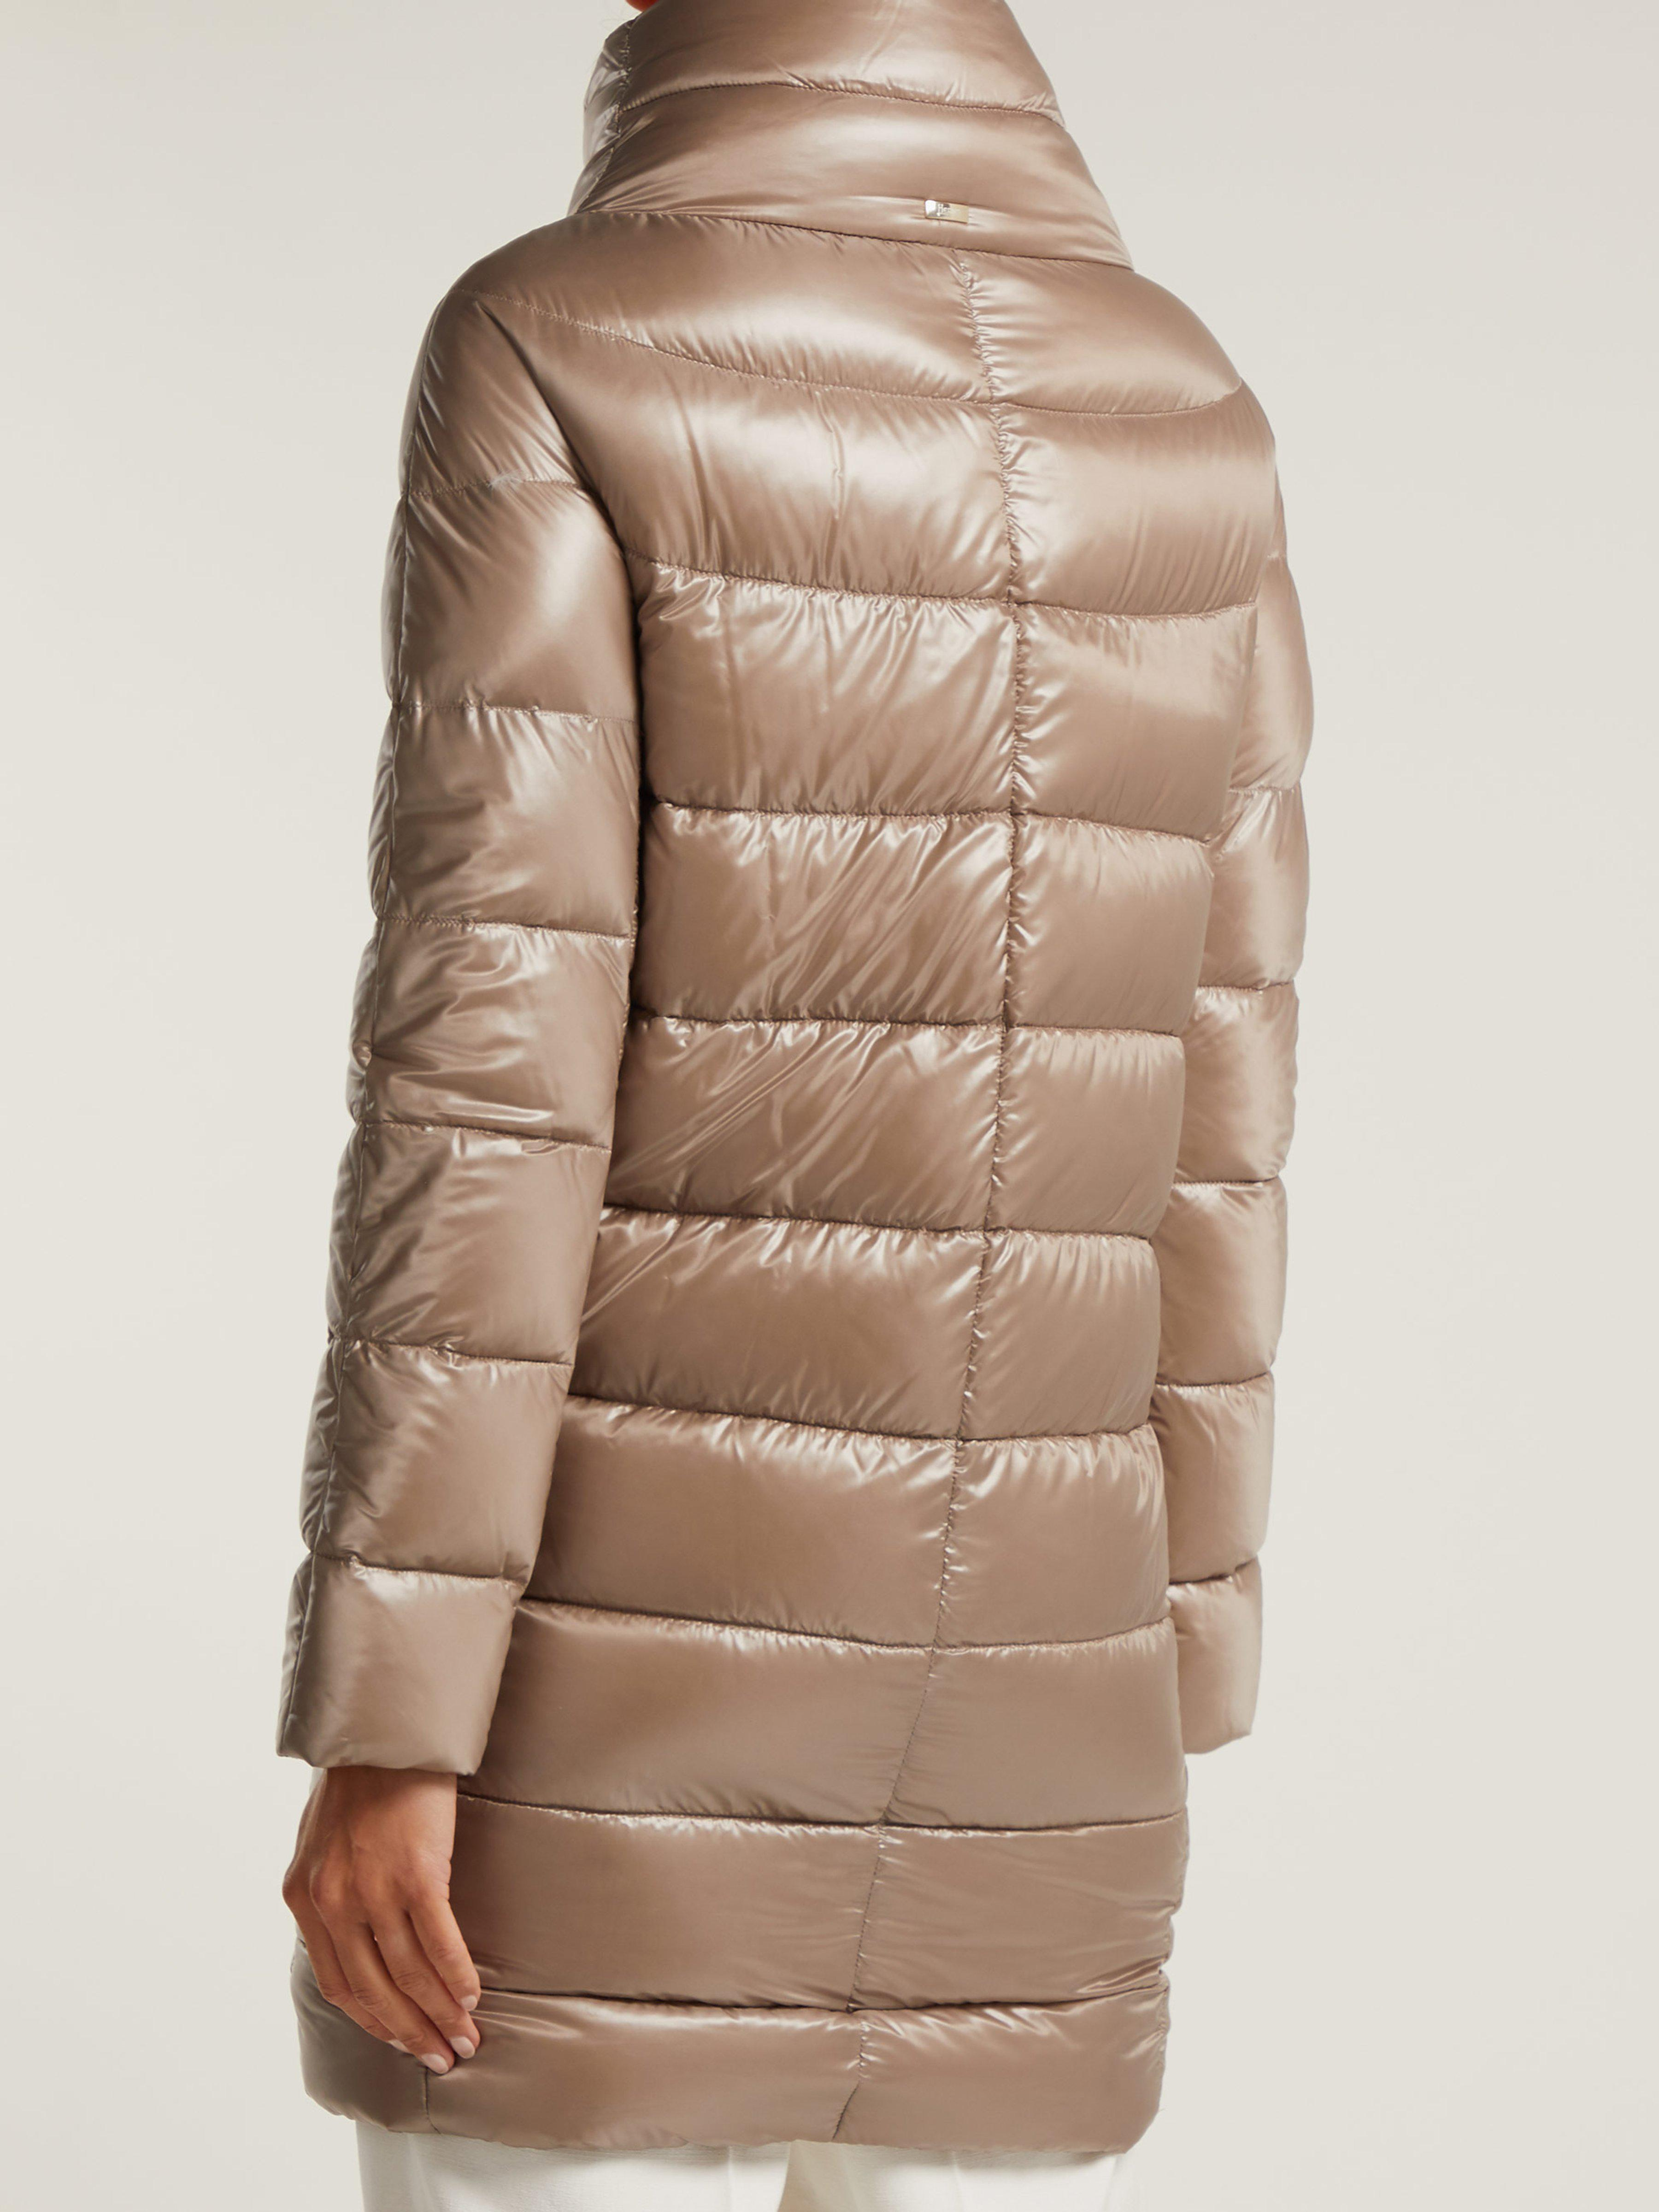 58adc1726624 Herno Dora Mid-length Light-weight Down Jacket in Natural - Lyst